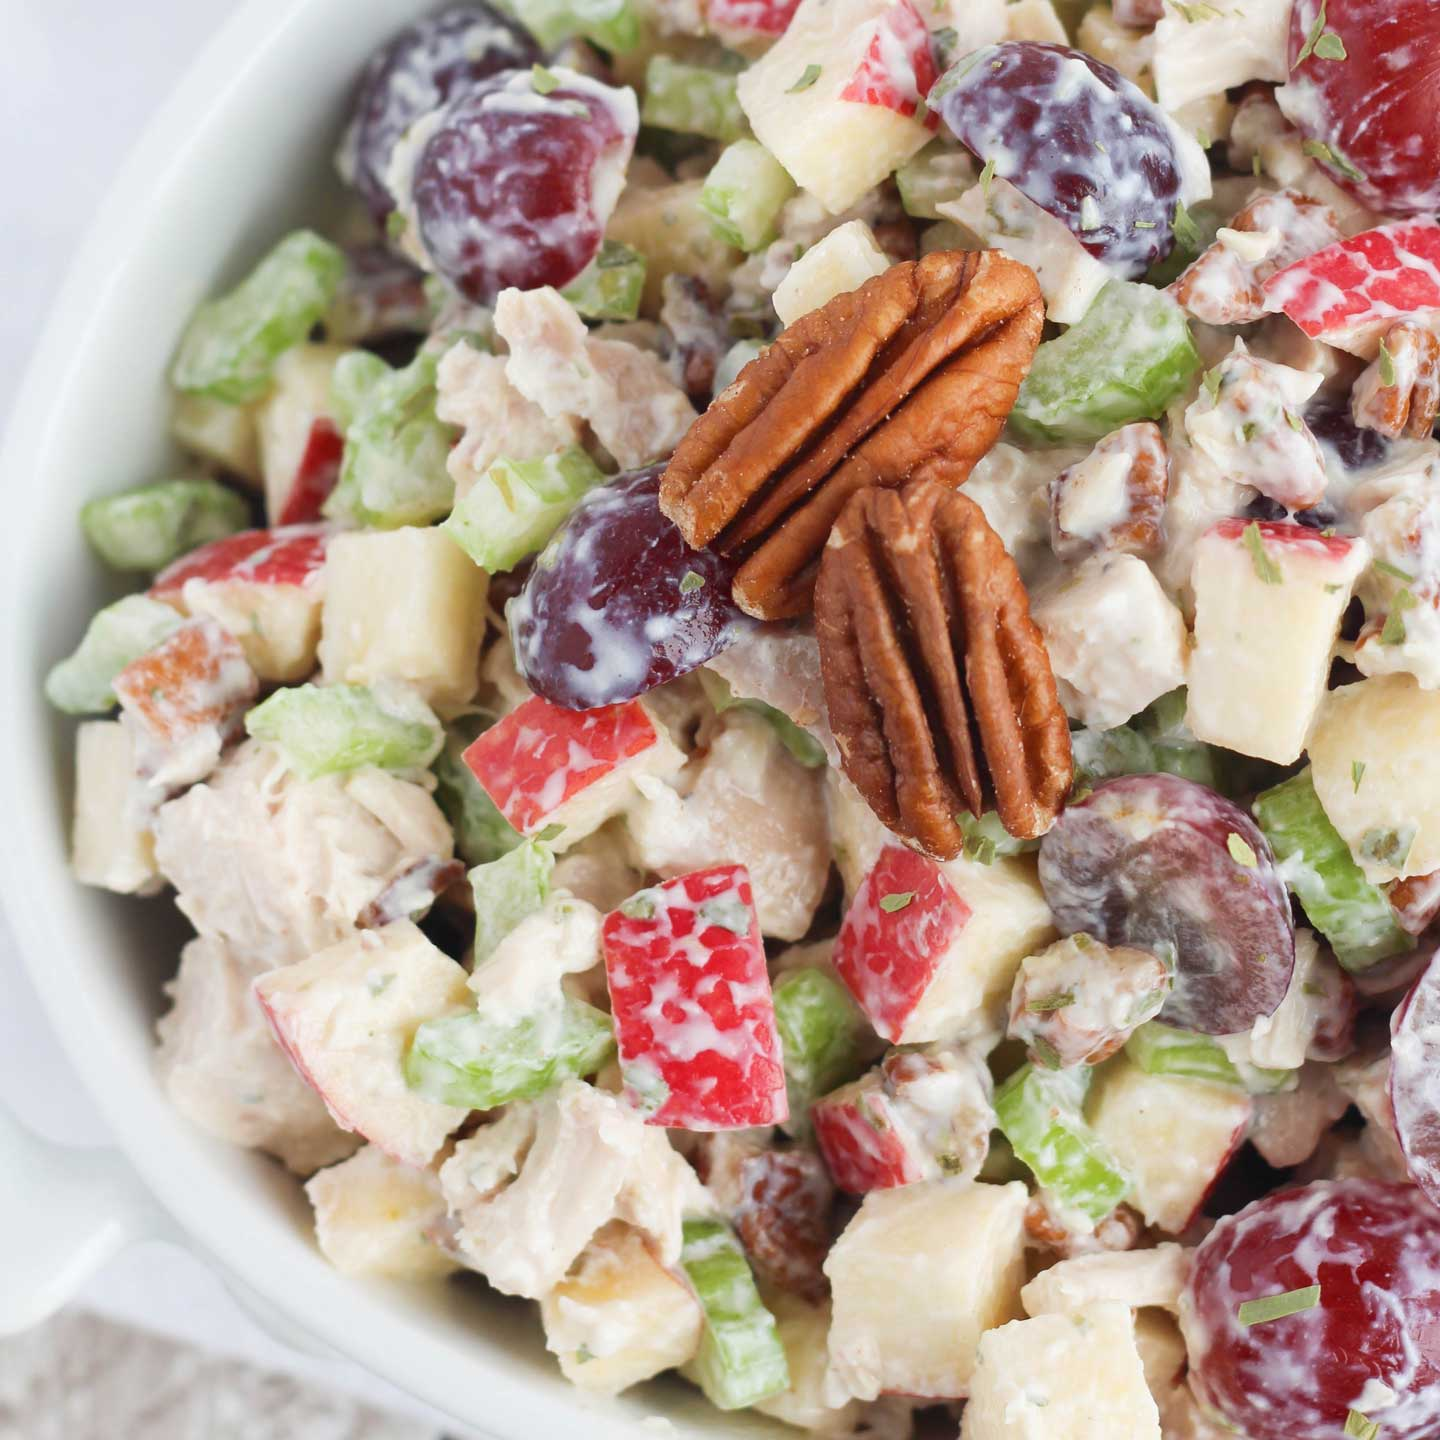 Similar to Arby's chicken salad, this loaded version is a chicken salad with grapes, apples, celery and pecans ... plus the crowning flourish of tarragon for something truly special!